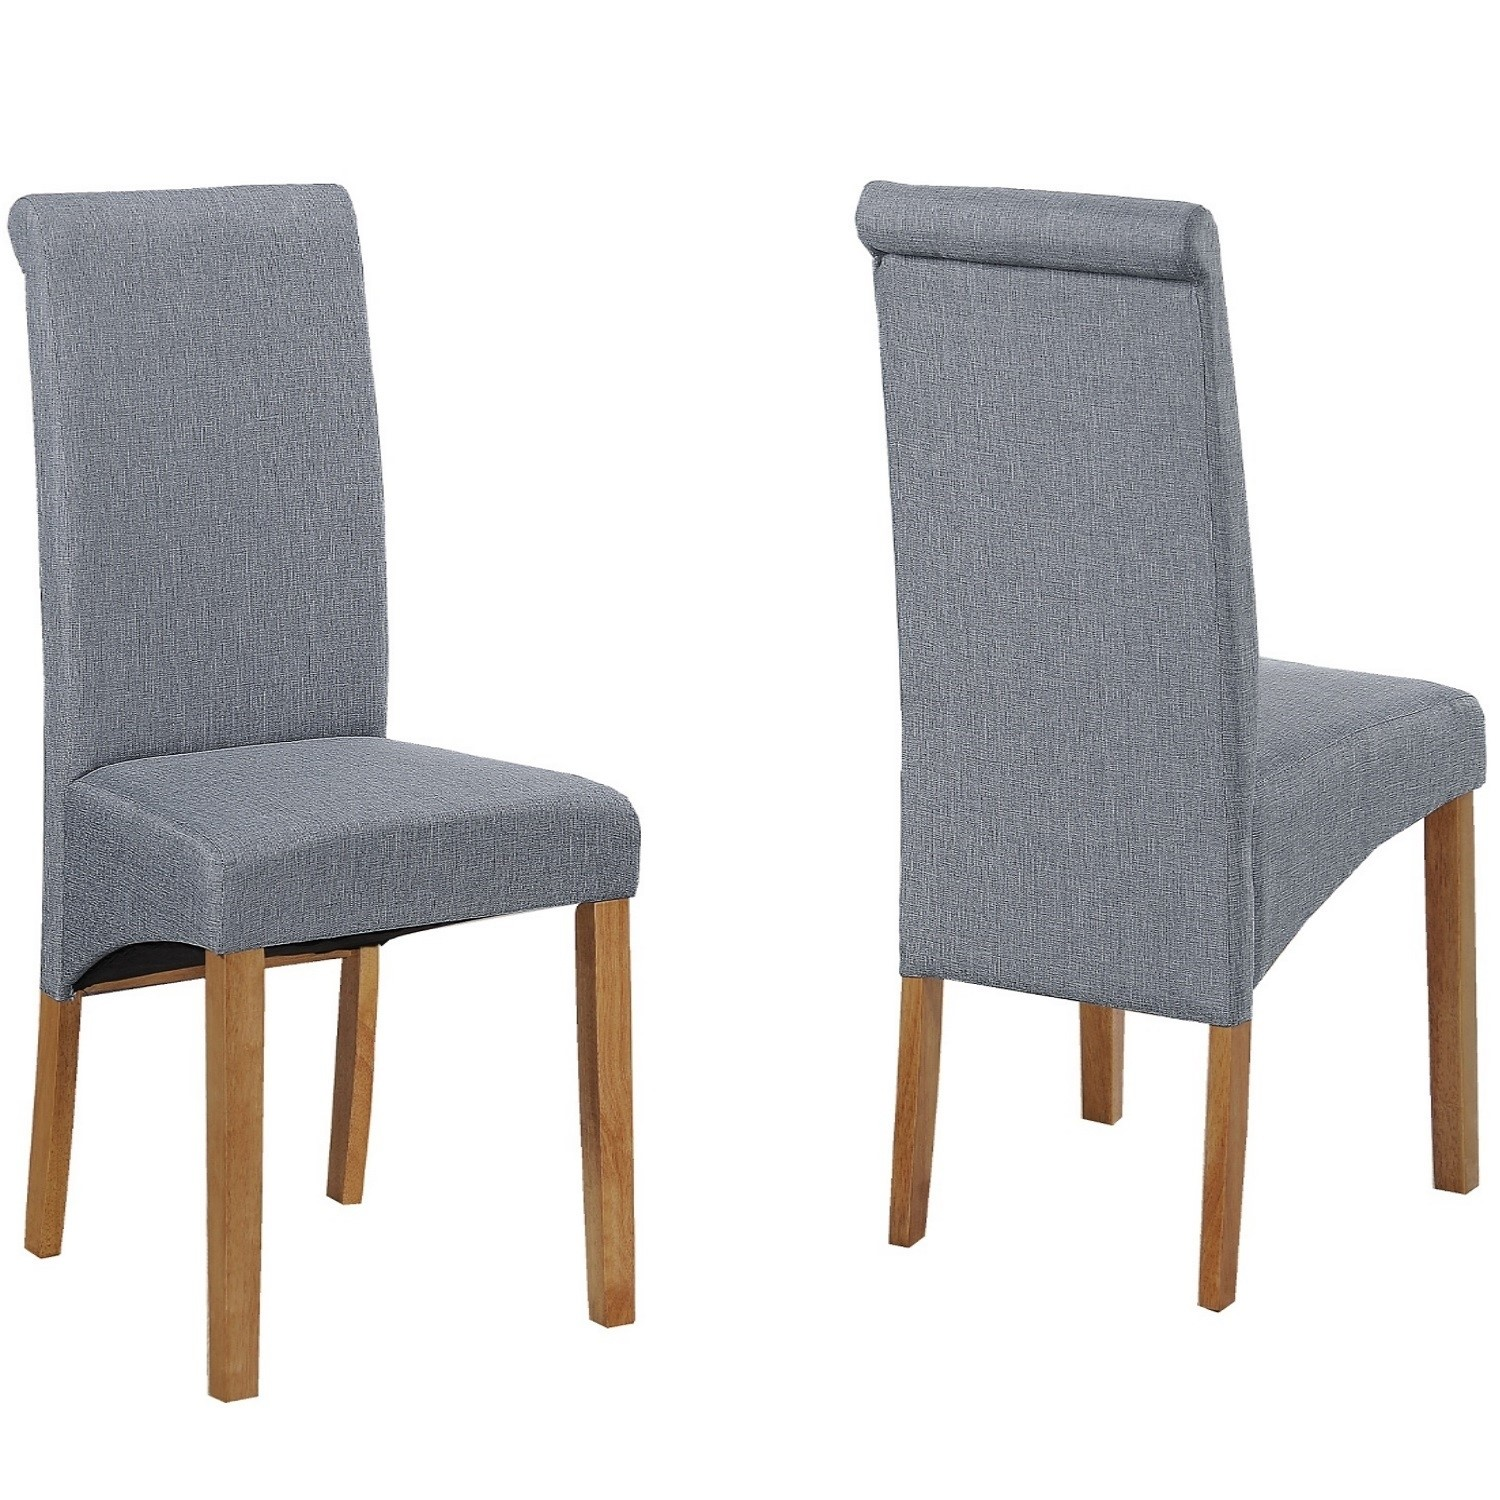 Pair of Grey Roll Top Dining Chairs with Wooden Legs New Haven